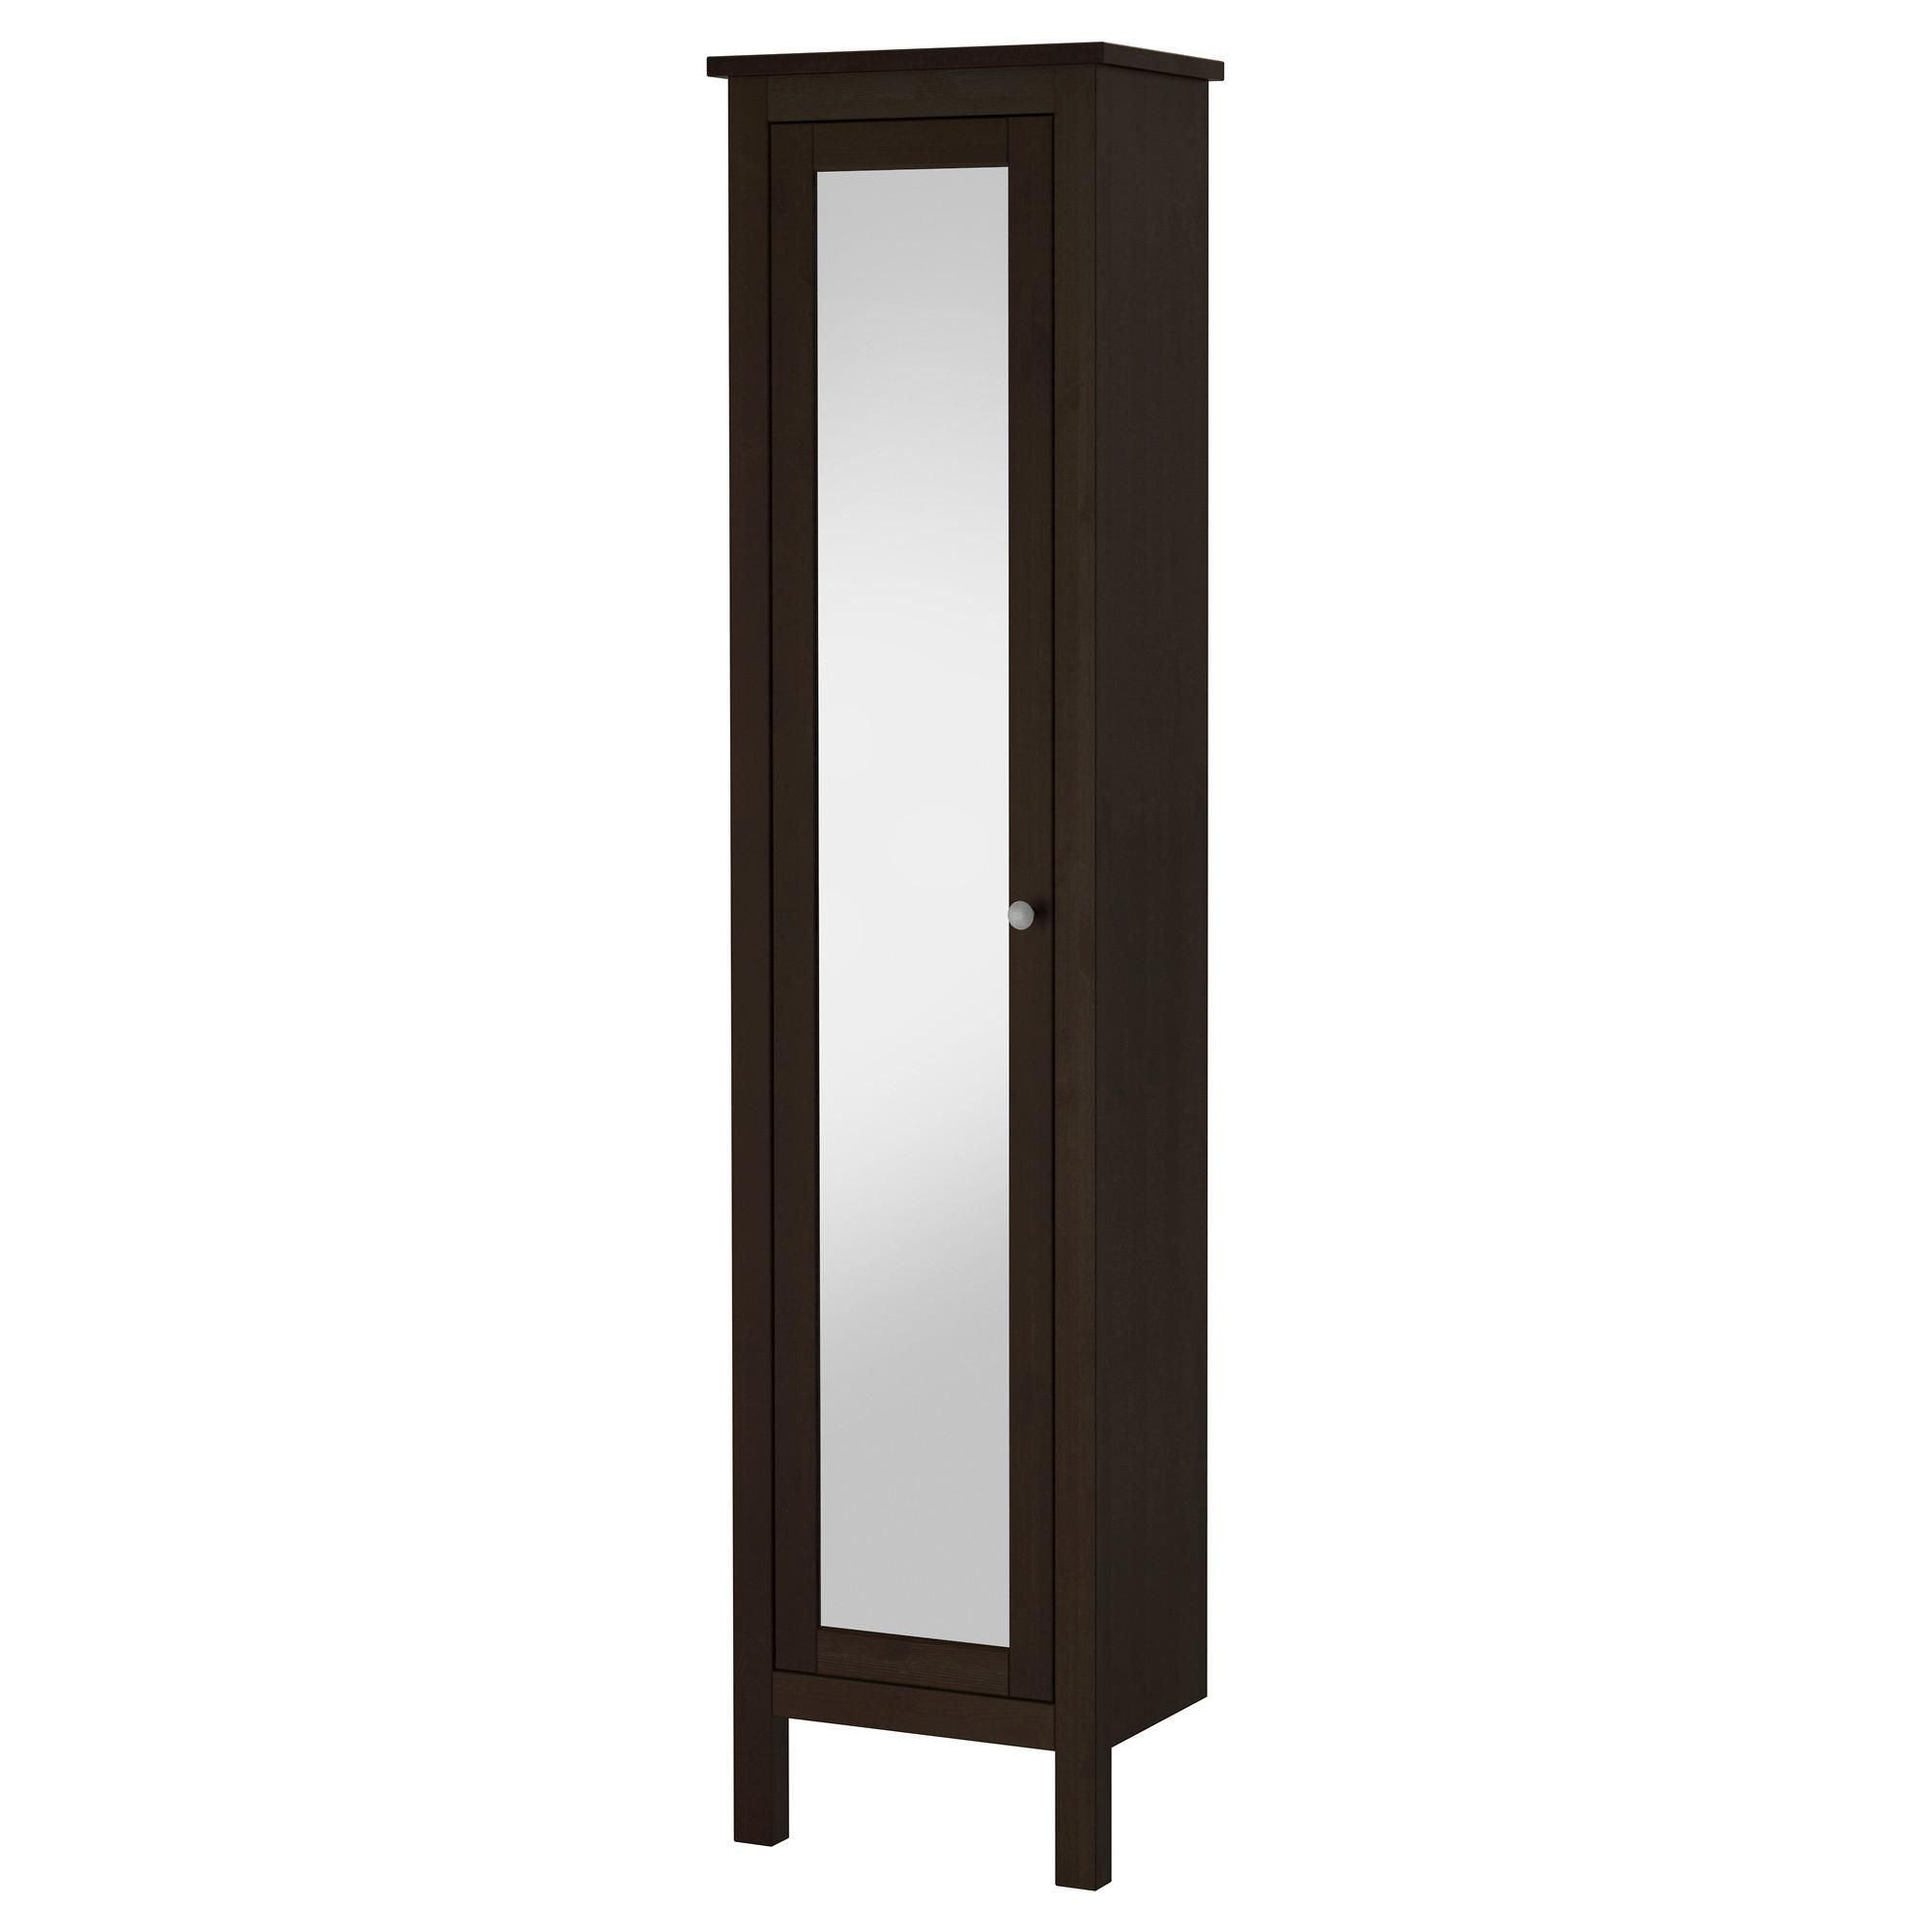 Hemnes High Cabinet With Mirror Door – Black Brown Stain – Ikea For Black Mirrored Cabinet (Image 13 of 20)